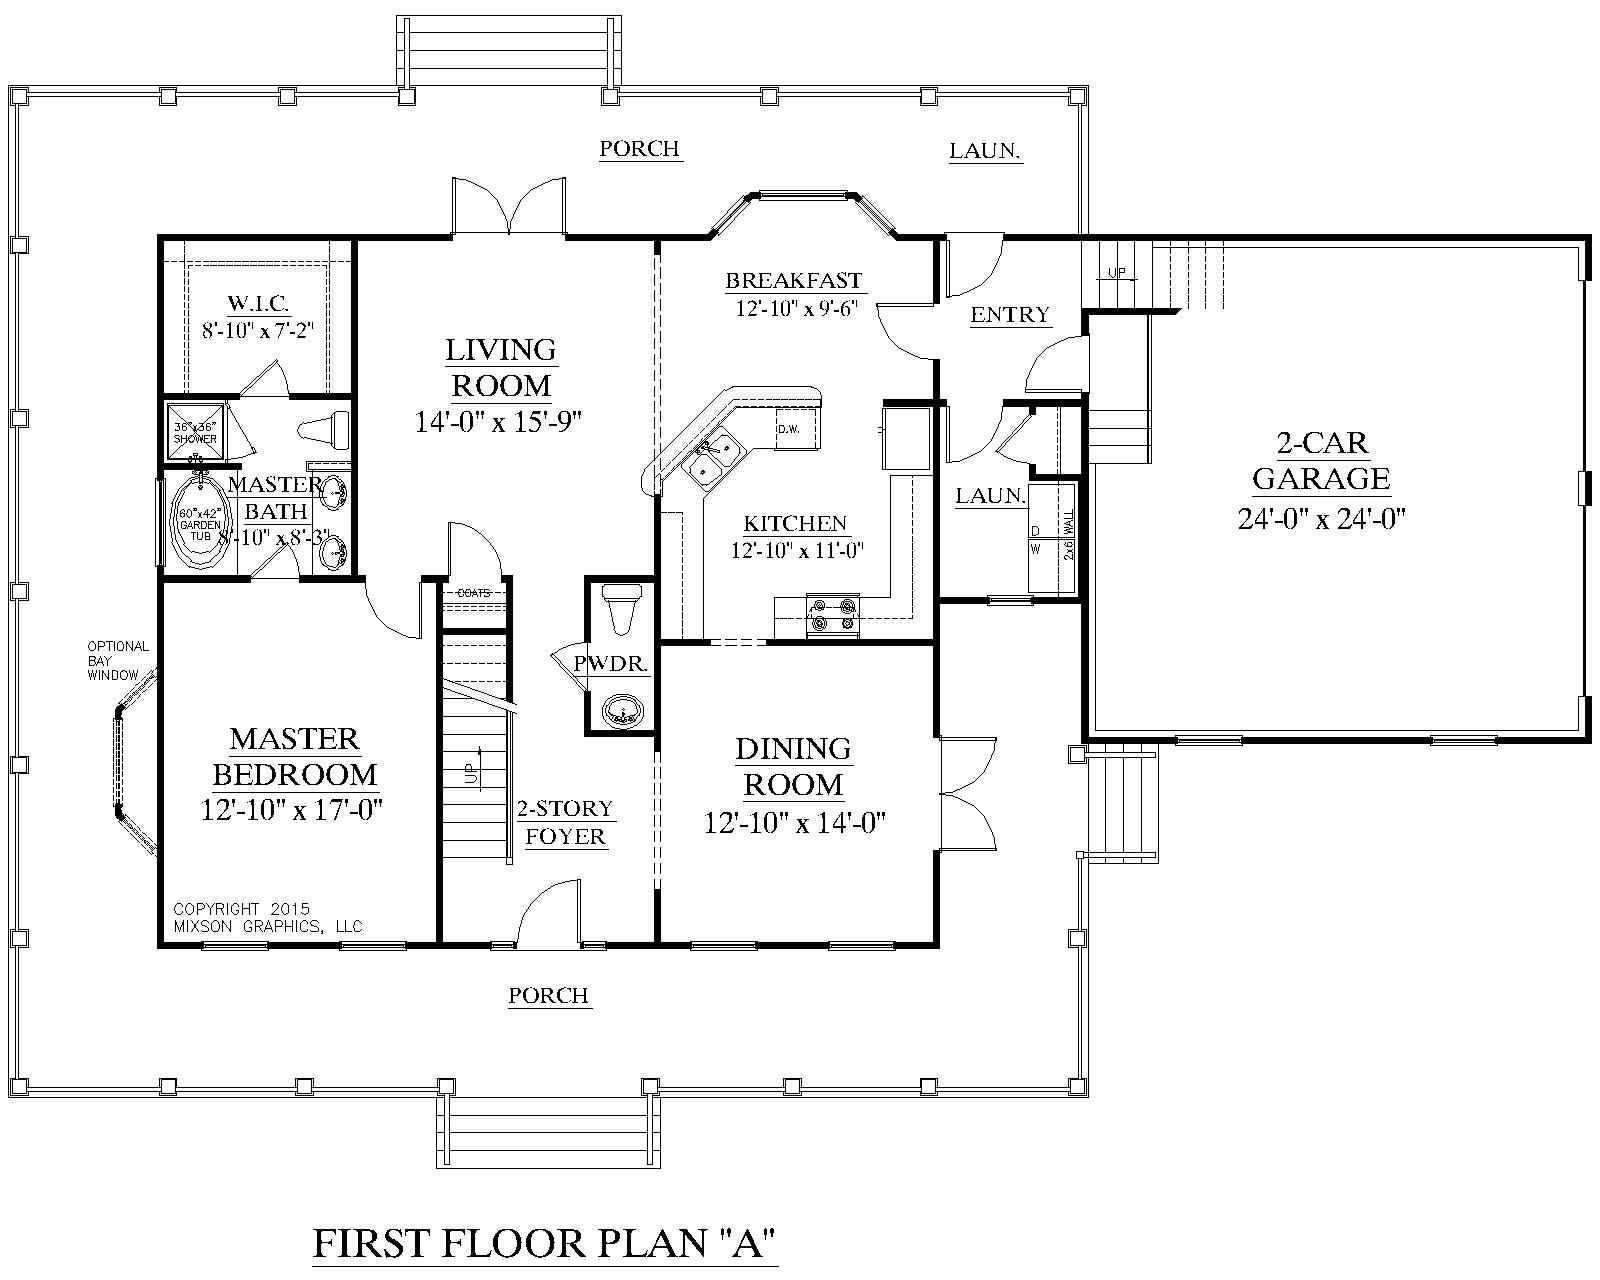 Master Bedroom 1st Floor House Plans house plan 2109-a the mayfield a 1st floor plan | our next house